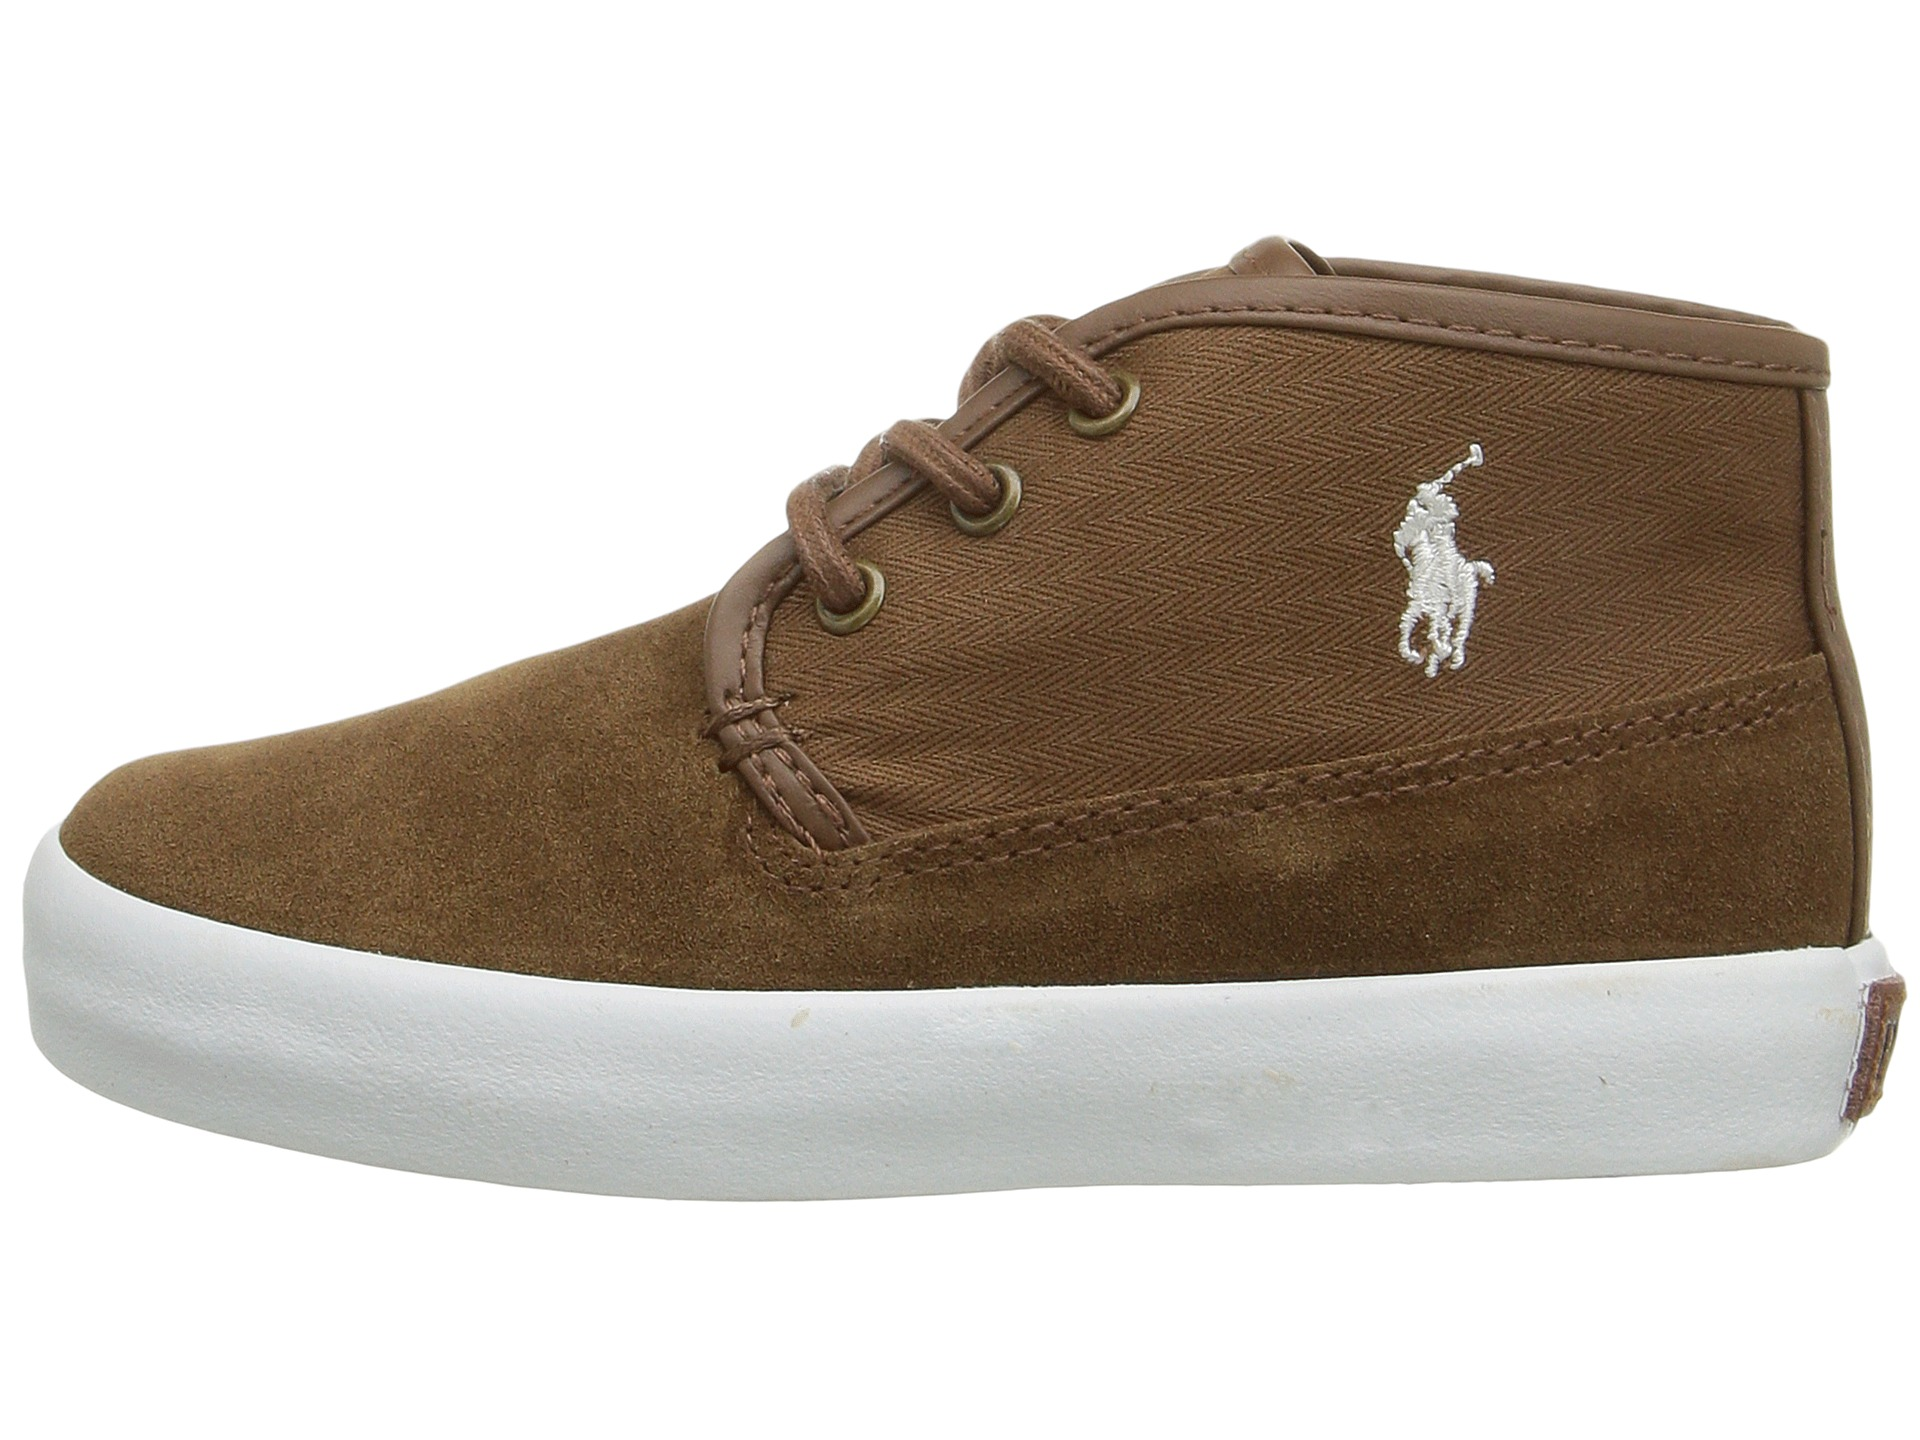 Polo ralph lauren kids waylon mid toddler at for Ralph lauren kids